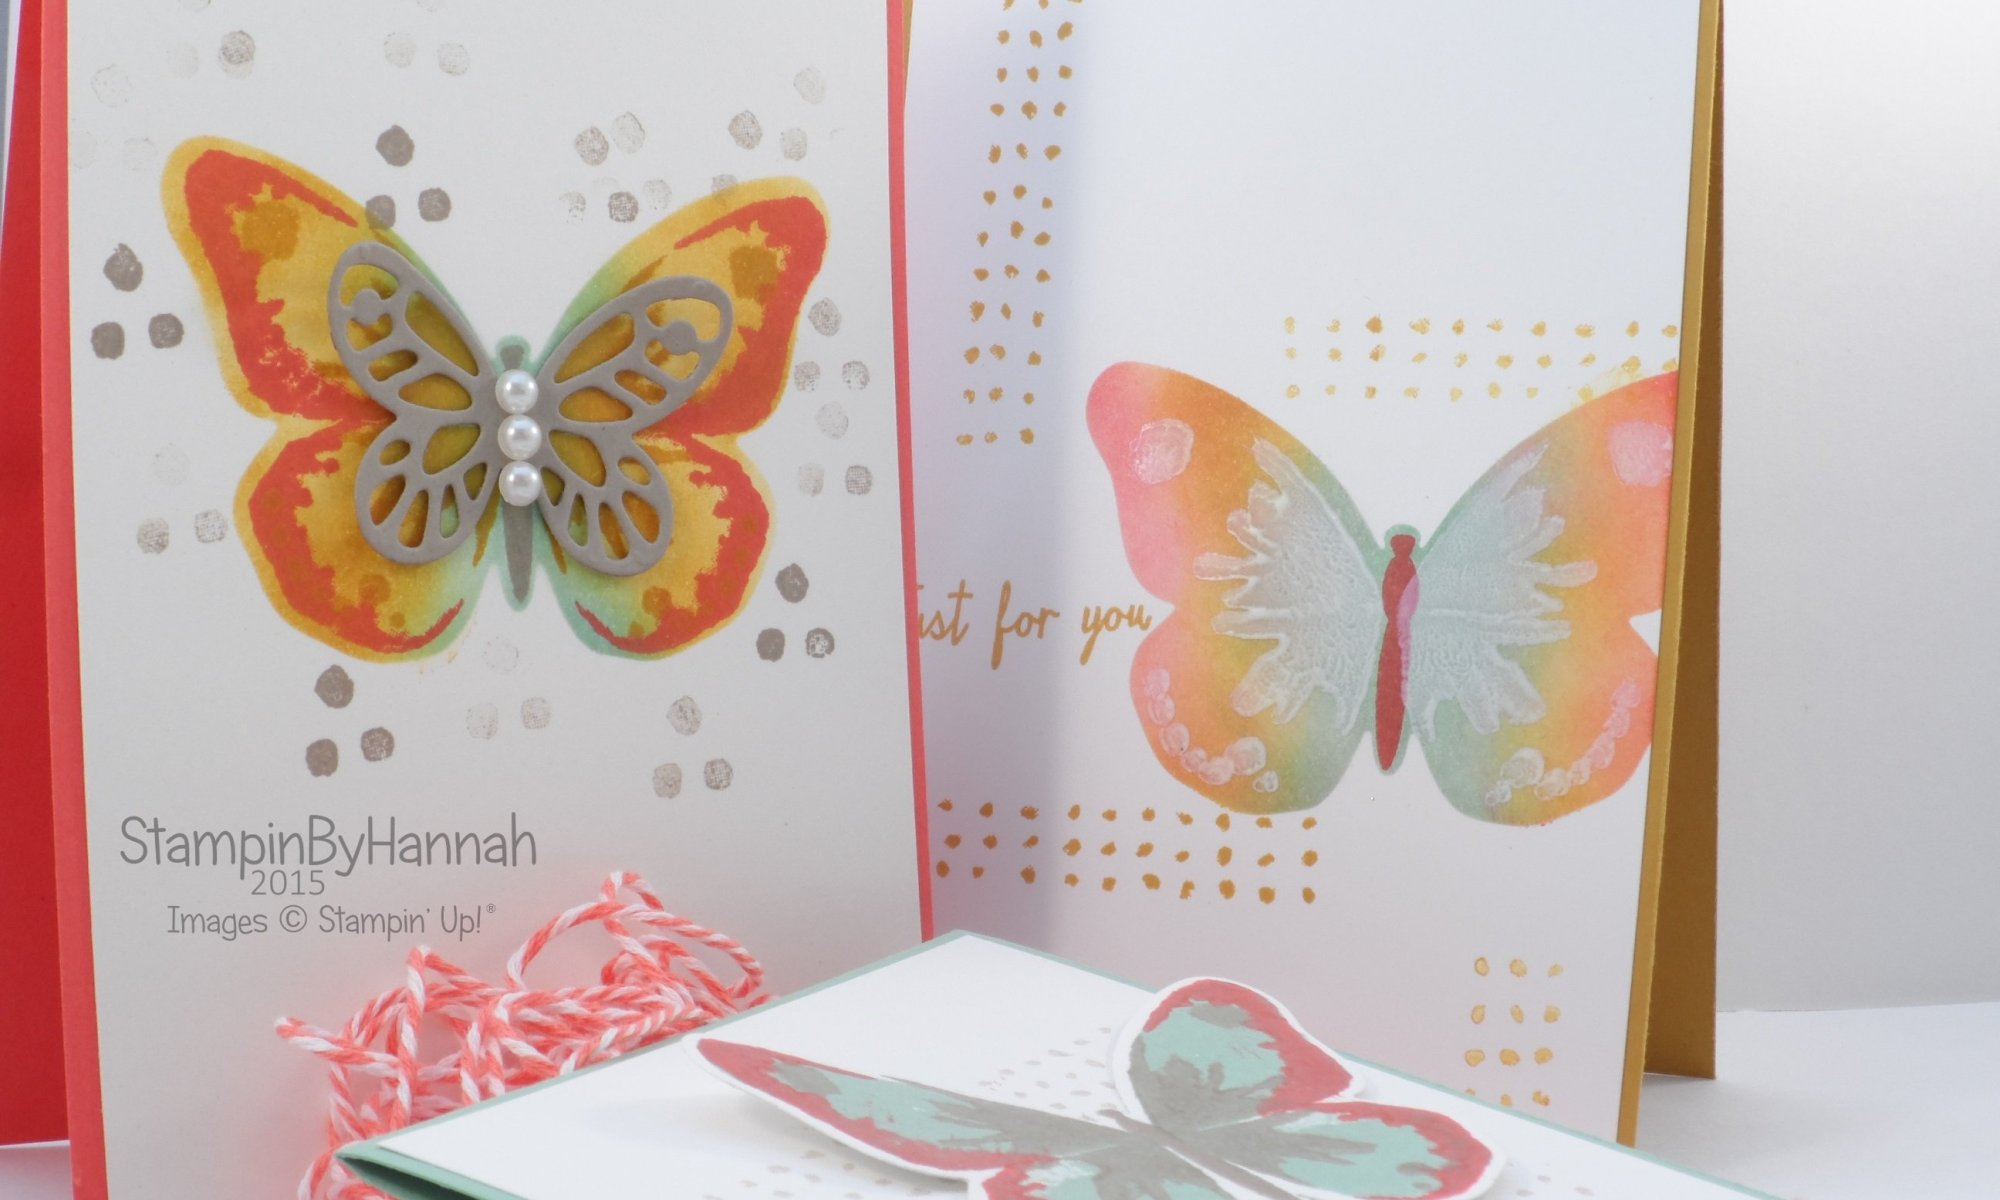 Stampin' Up! UK Watercolour wings cards